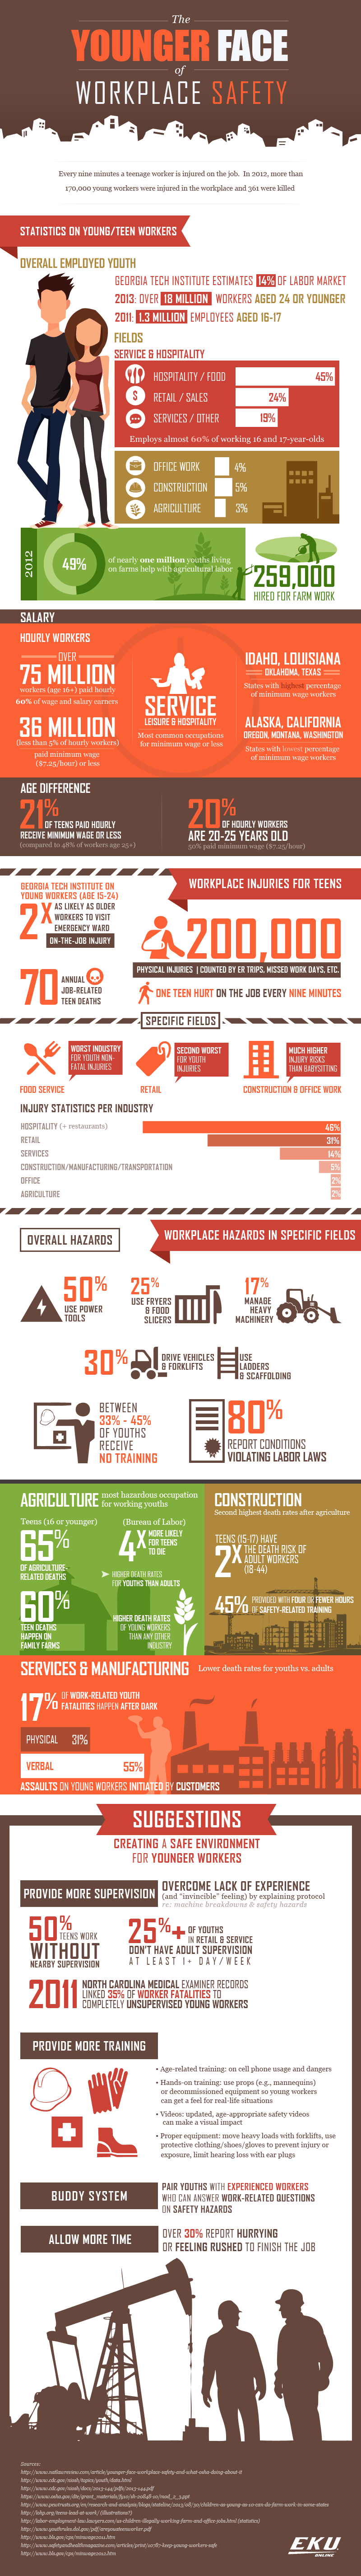 The Younger Face of Workplace Safety